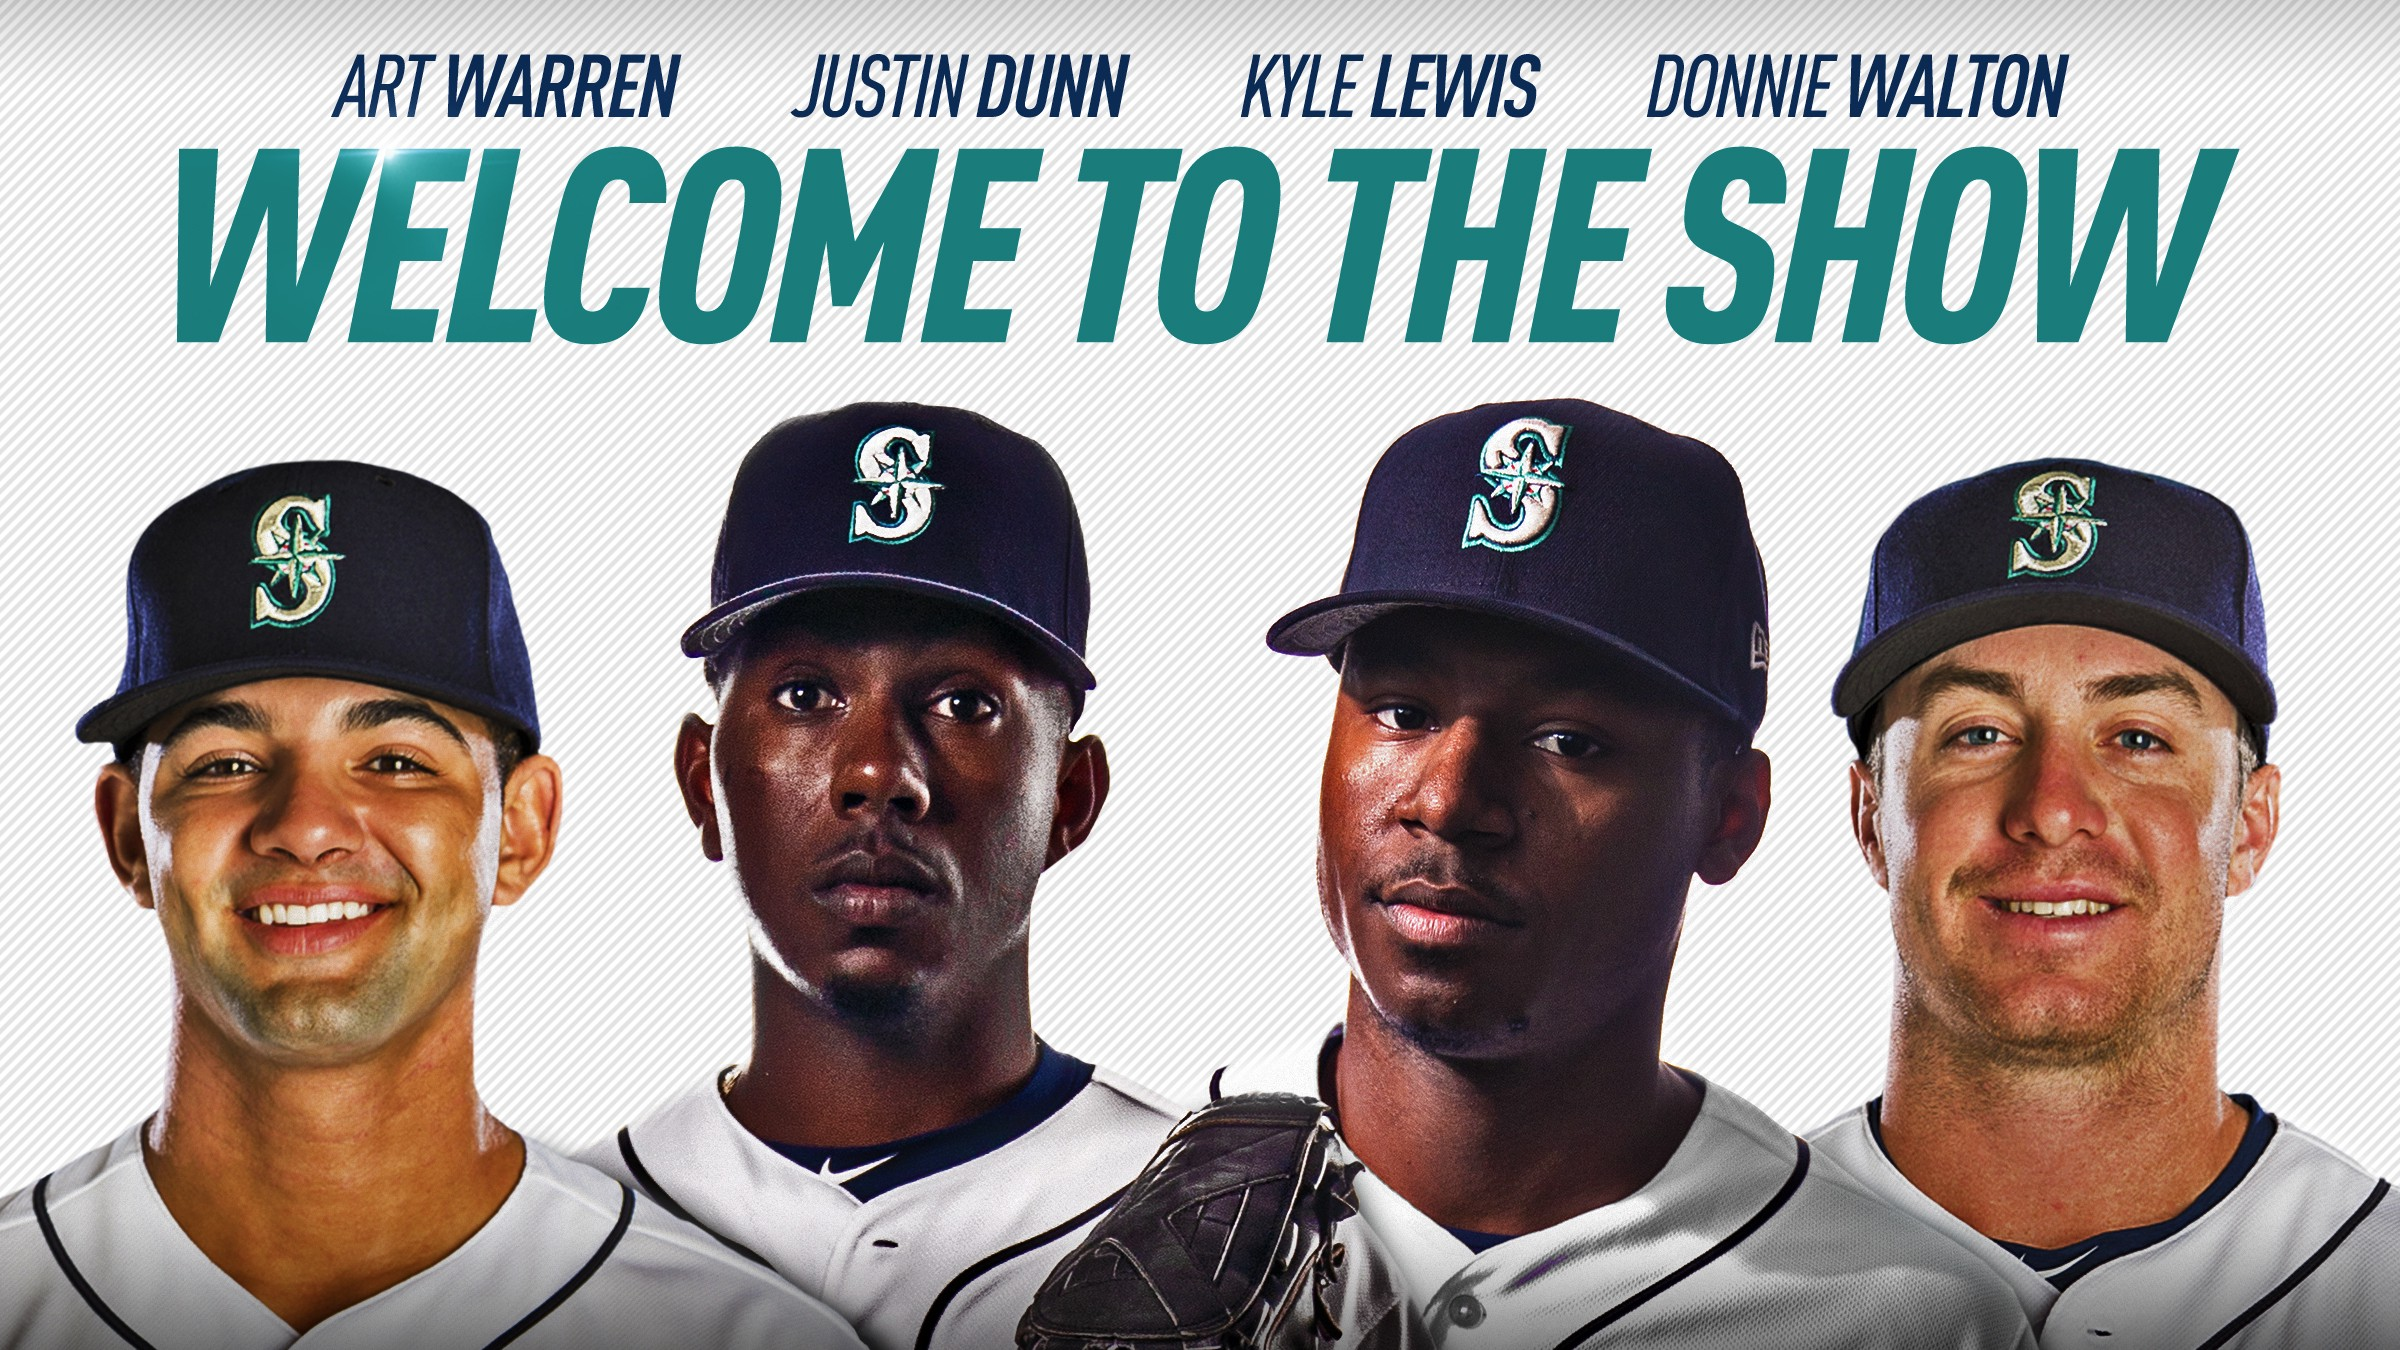 Mariners Select Justin Dunn, Kyle Lewis, Donnie Walton and